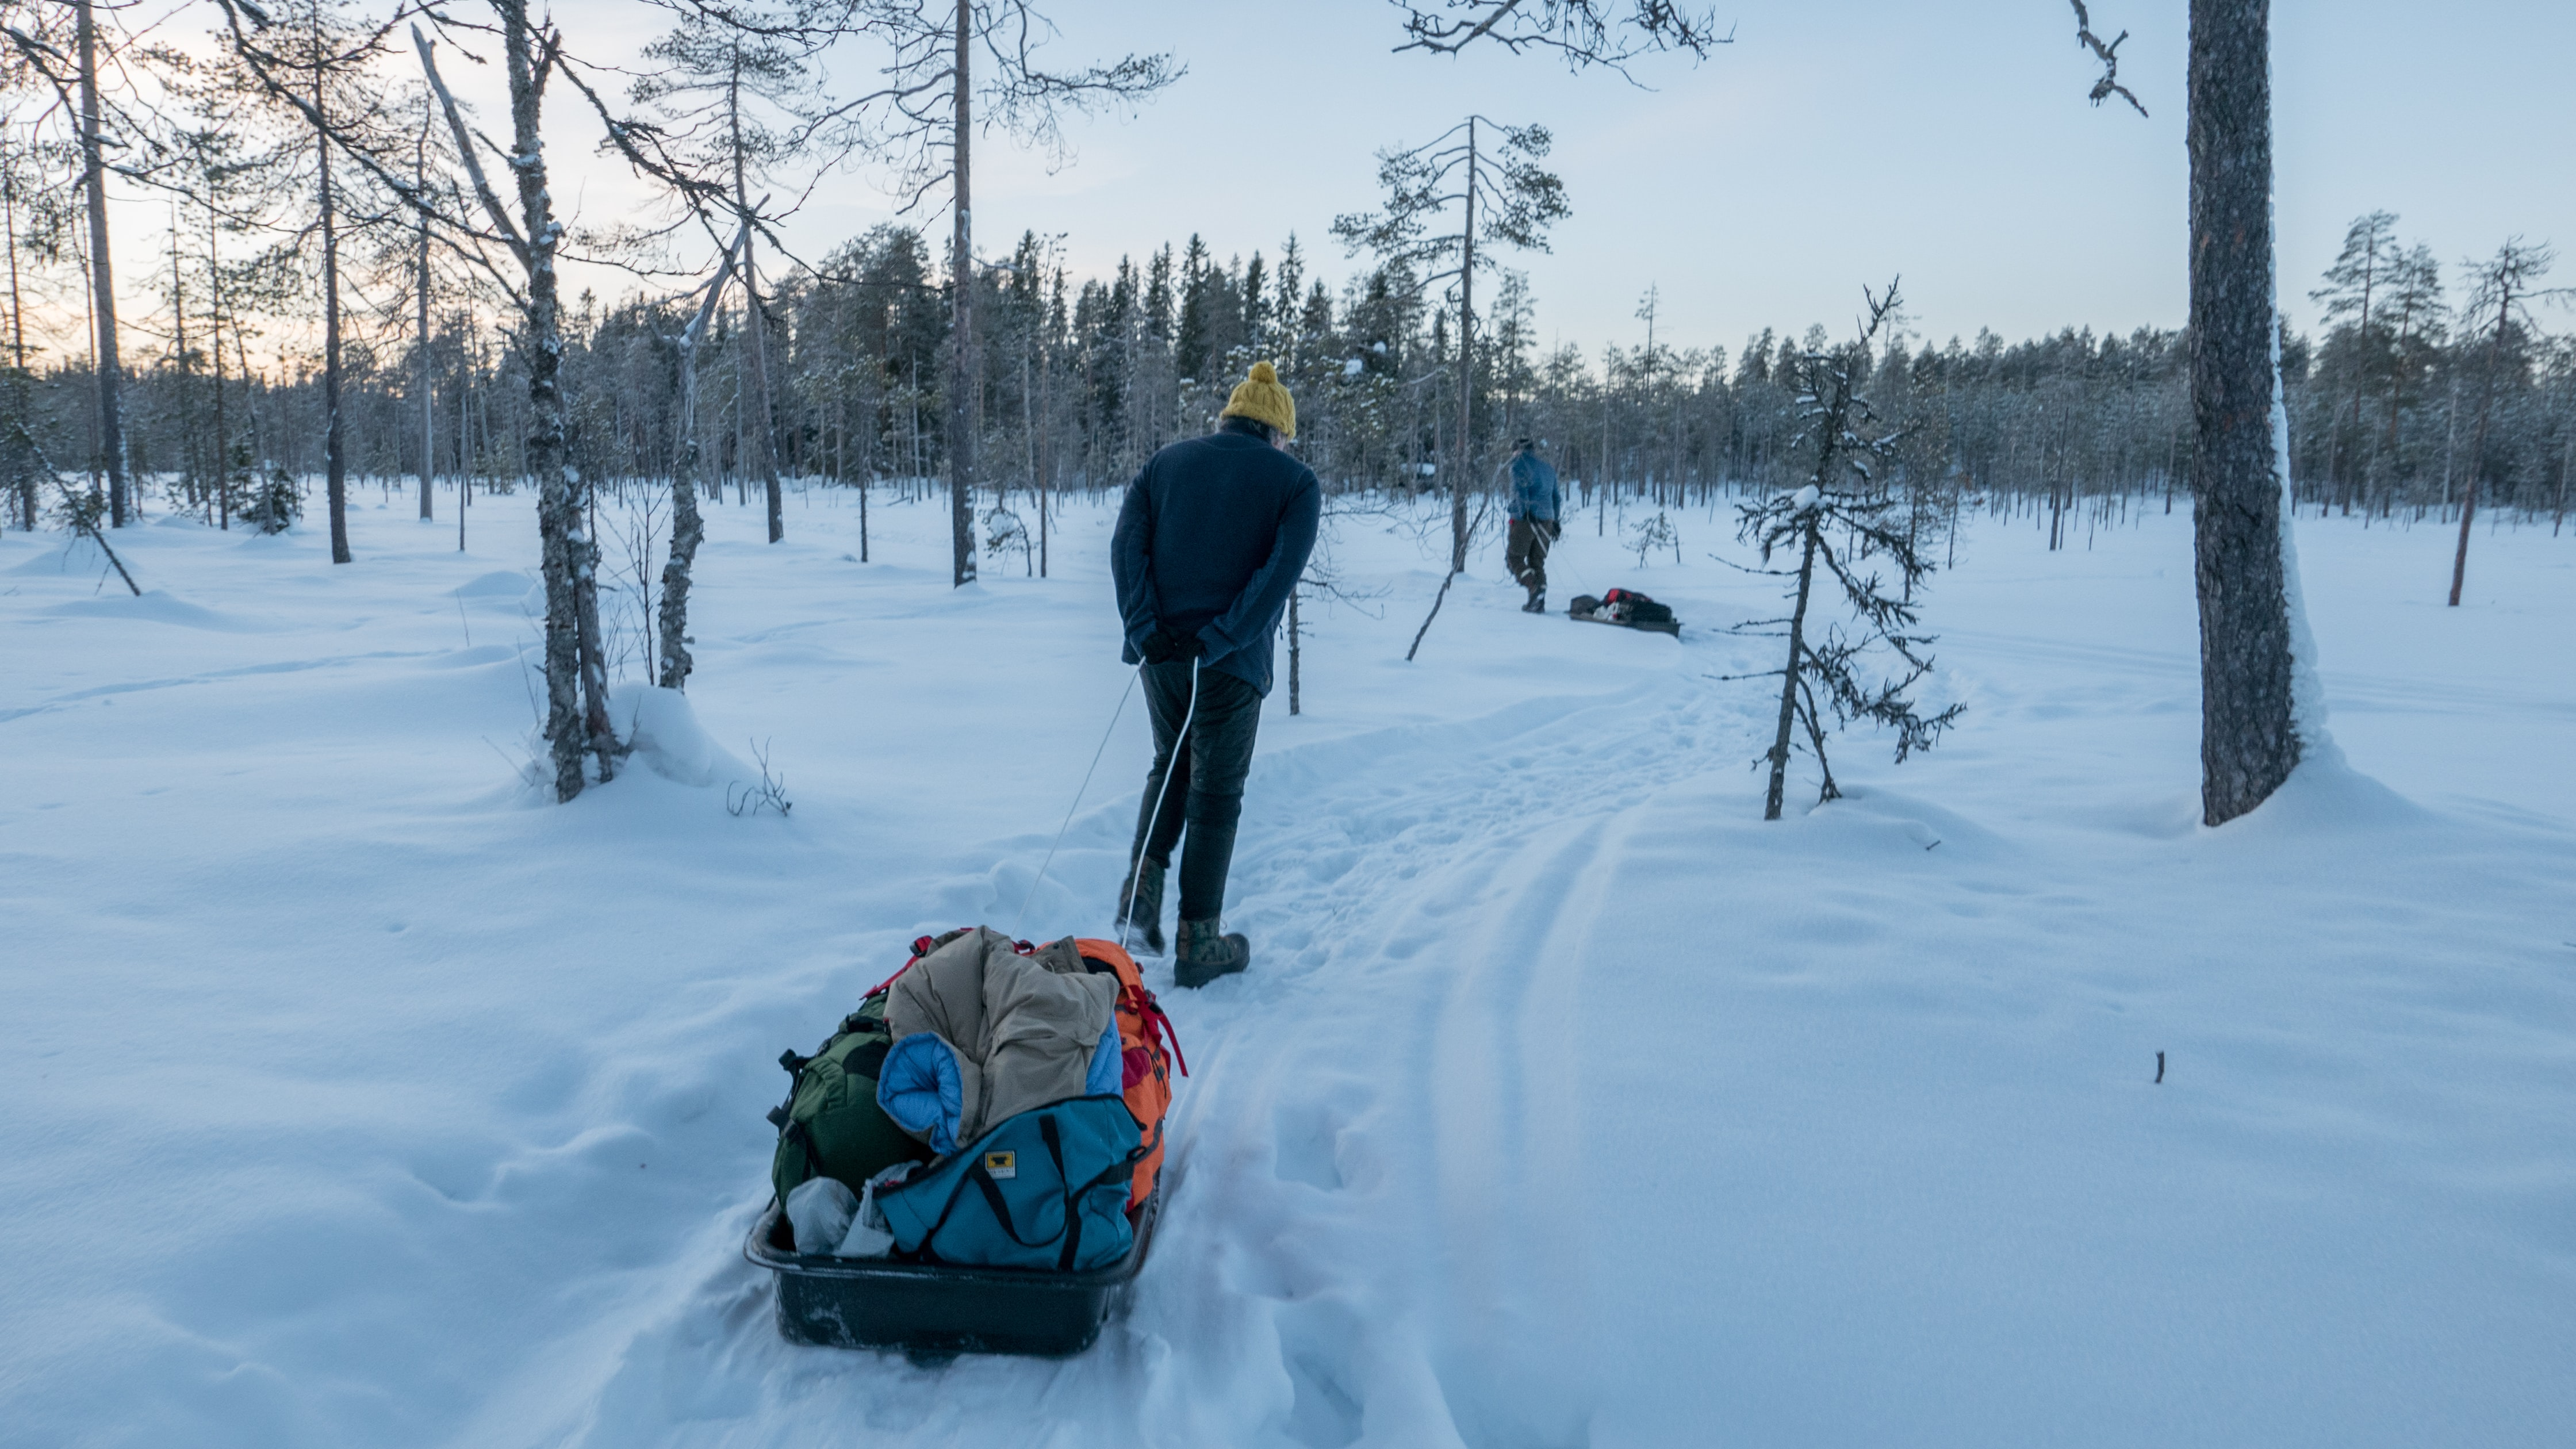 man in blue coat walking on snow pulling grey wagon with luggages near trees during daytime